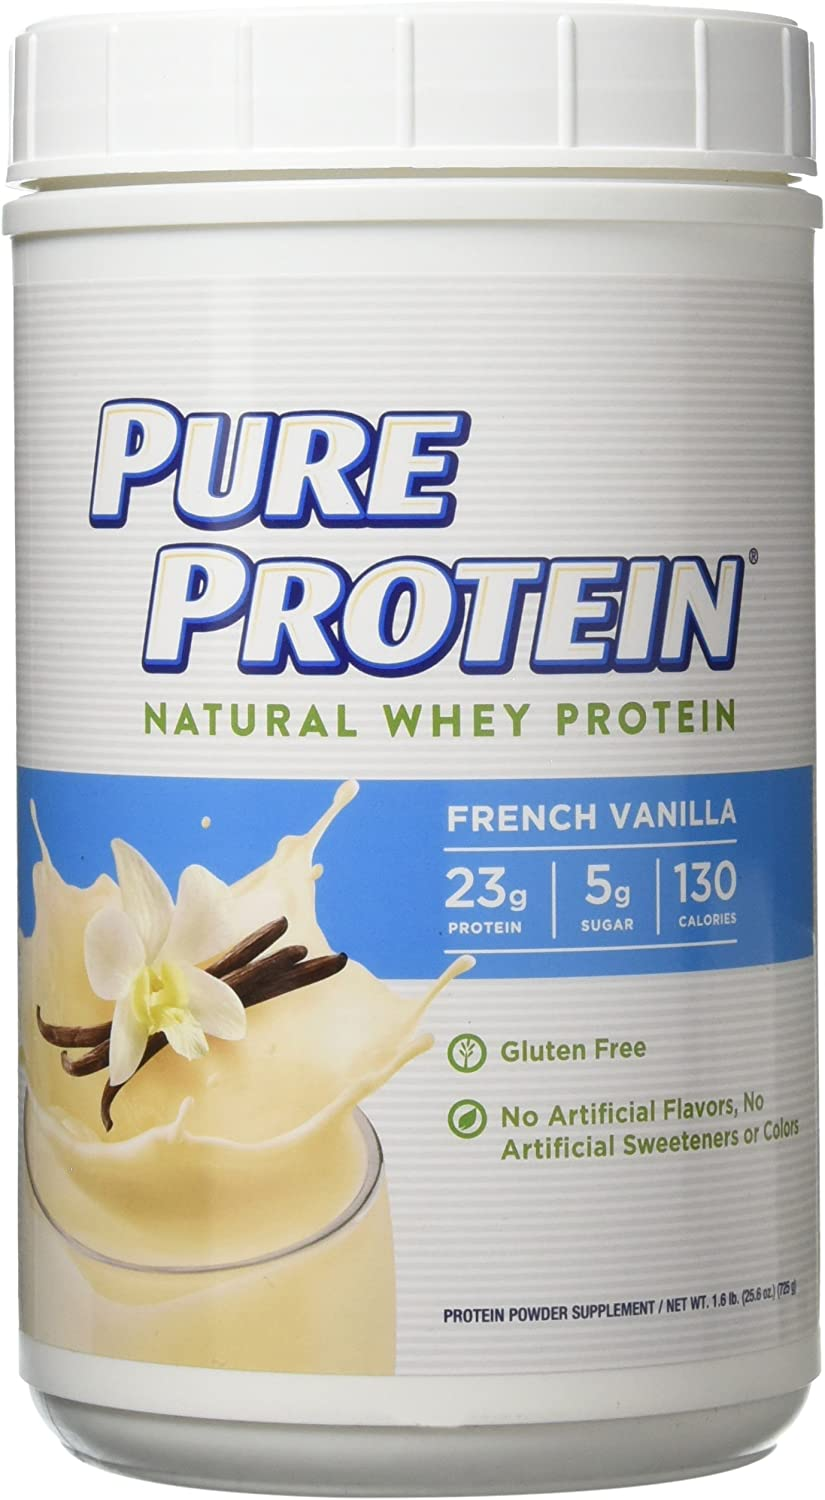 Pure Protein Powder, Natural Whey, High Protein, Low Sugar, Gluten Free, French Vanilla, 1.6 lbs